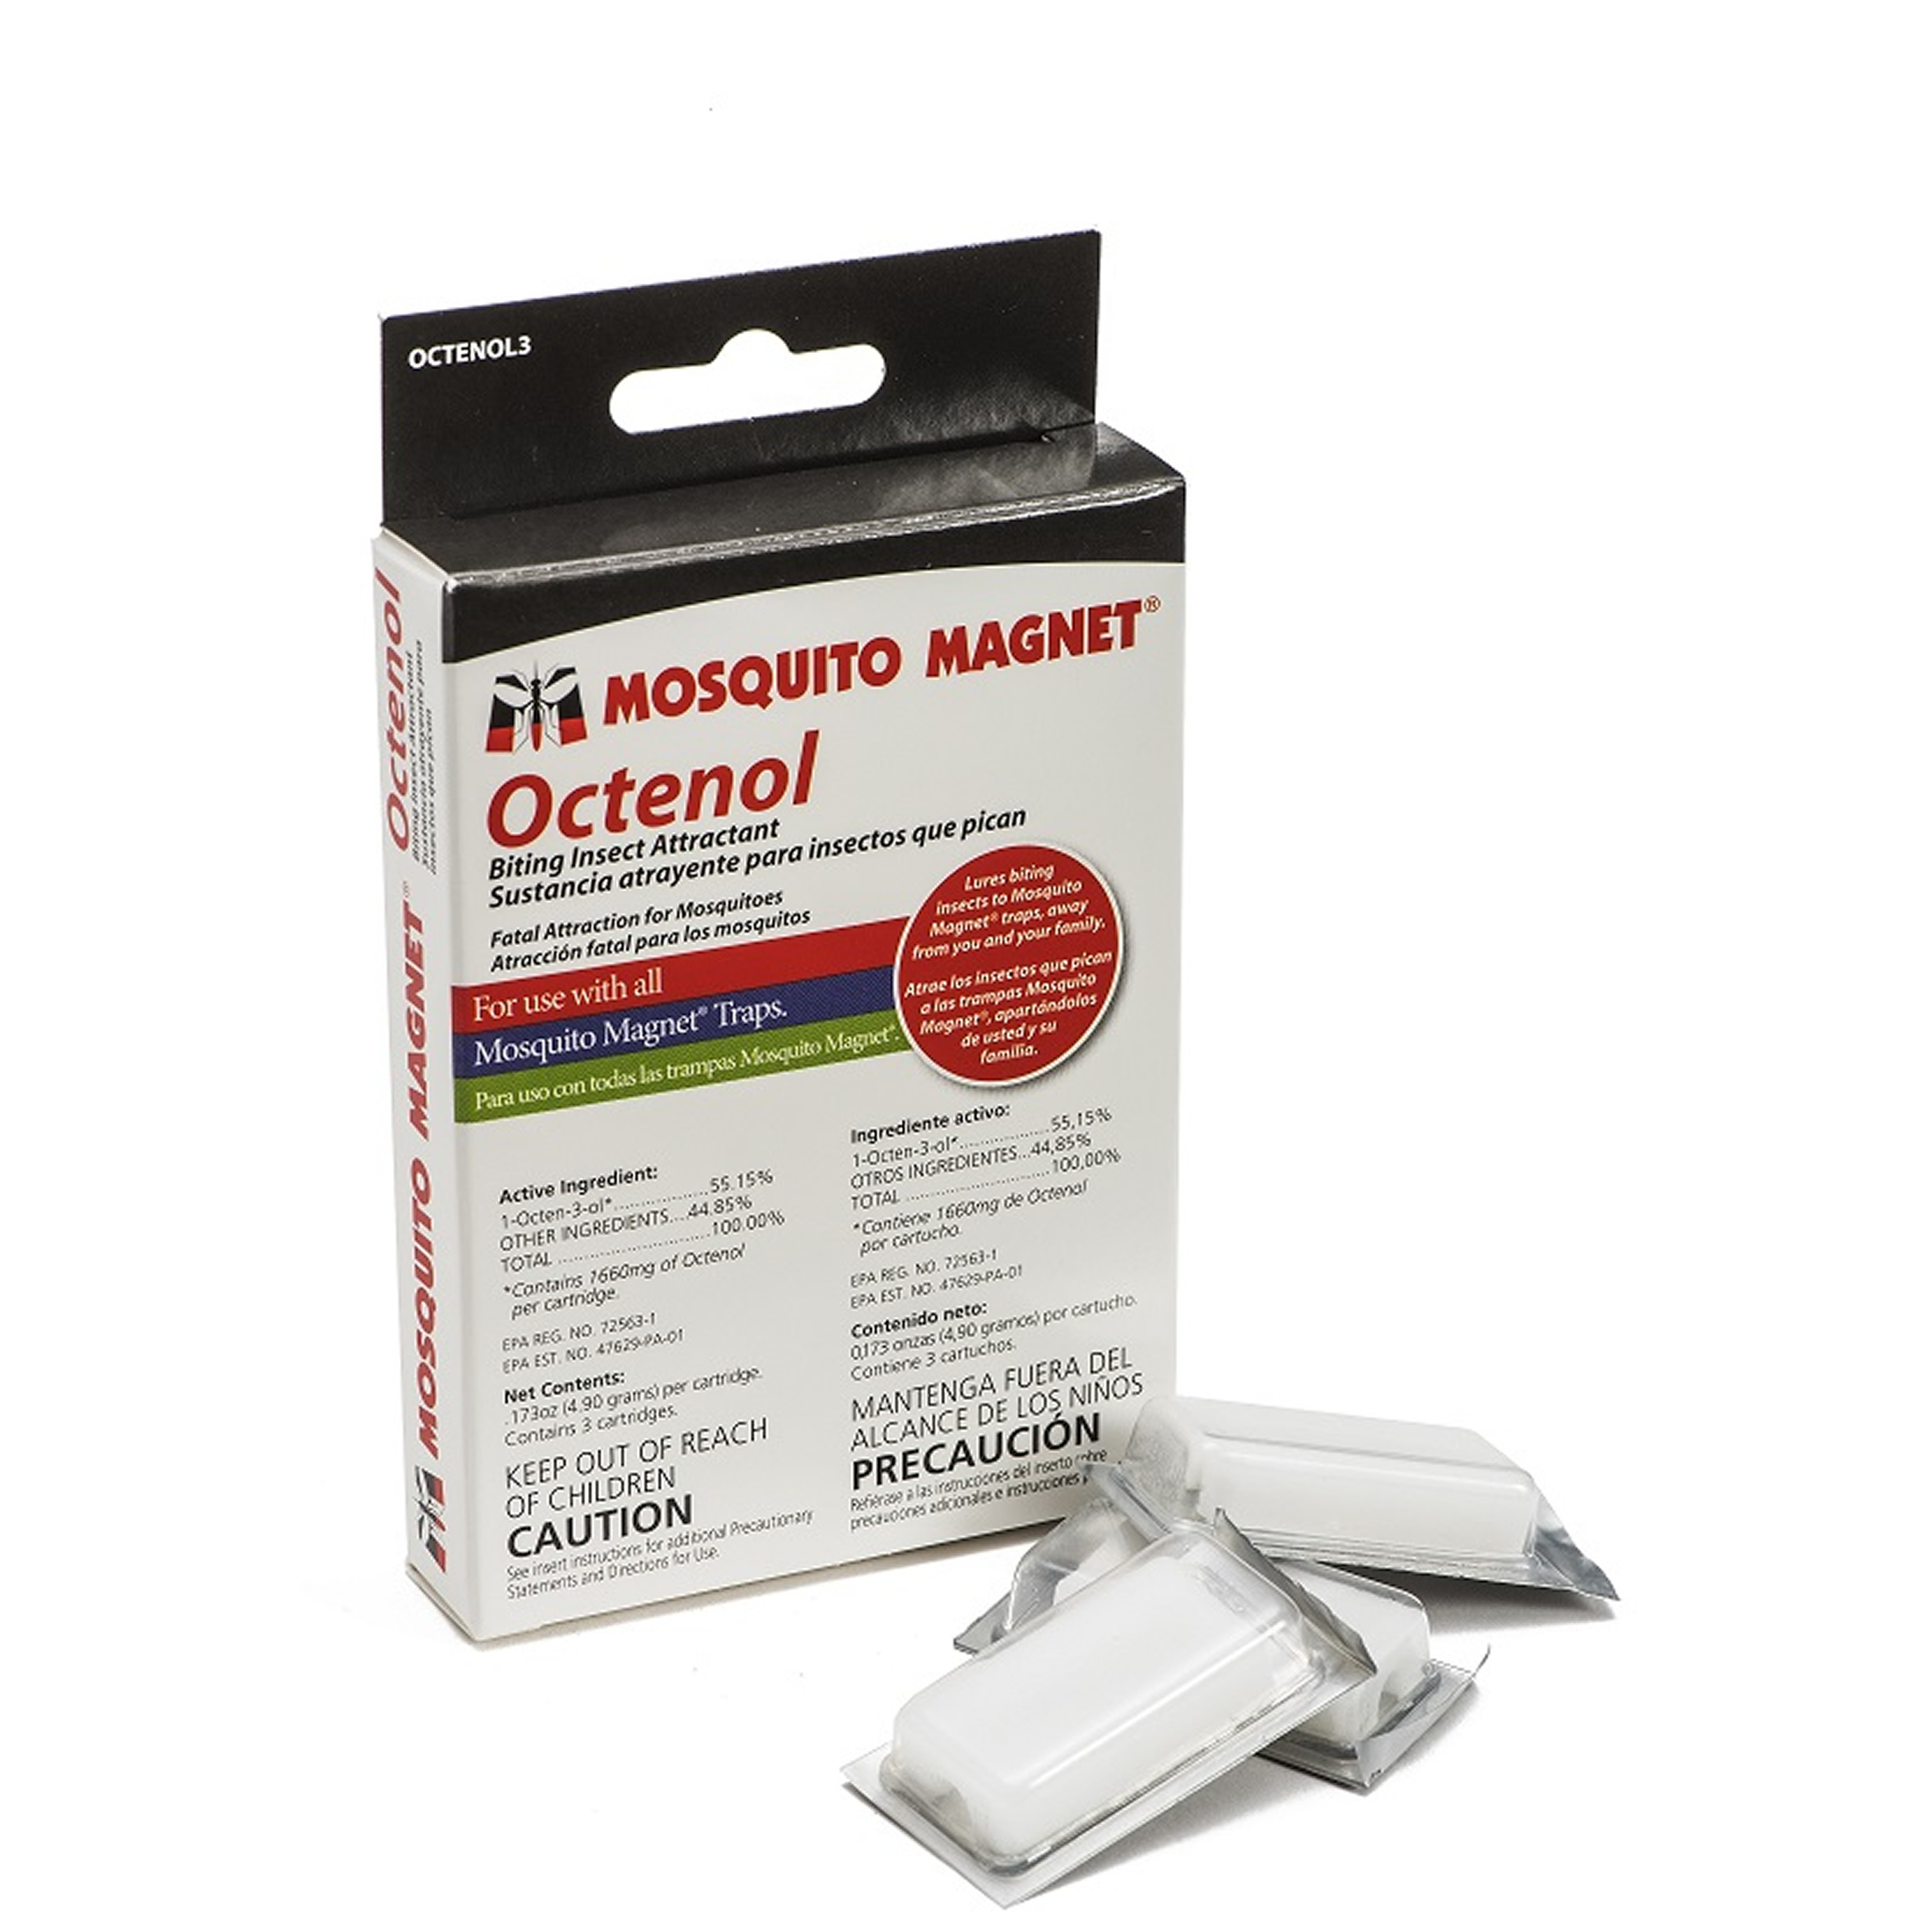 Mosquito Magnet 3-Pack Octenol Attractant